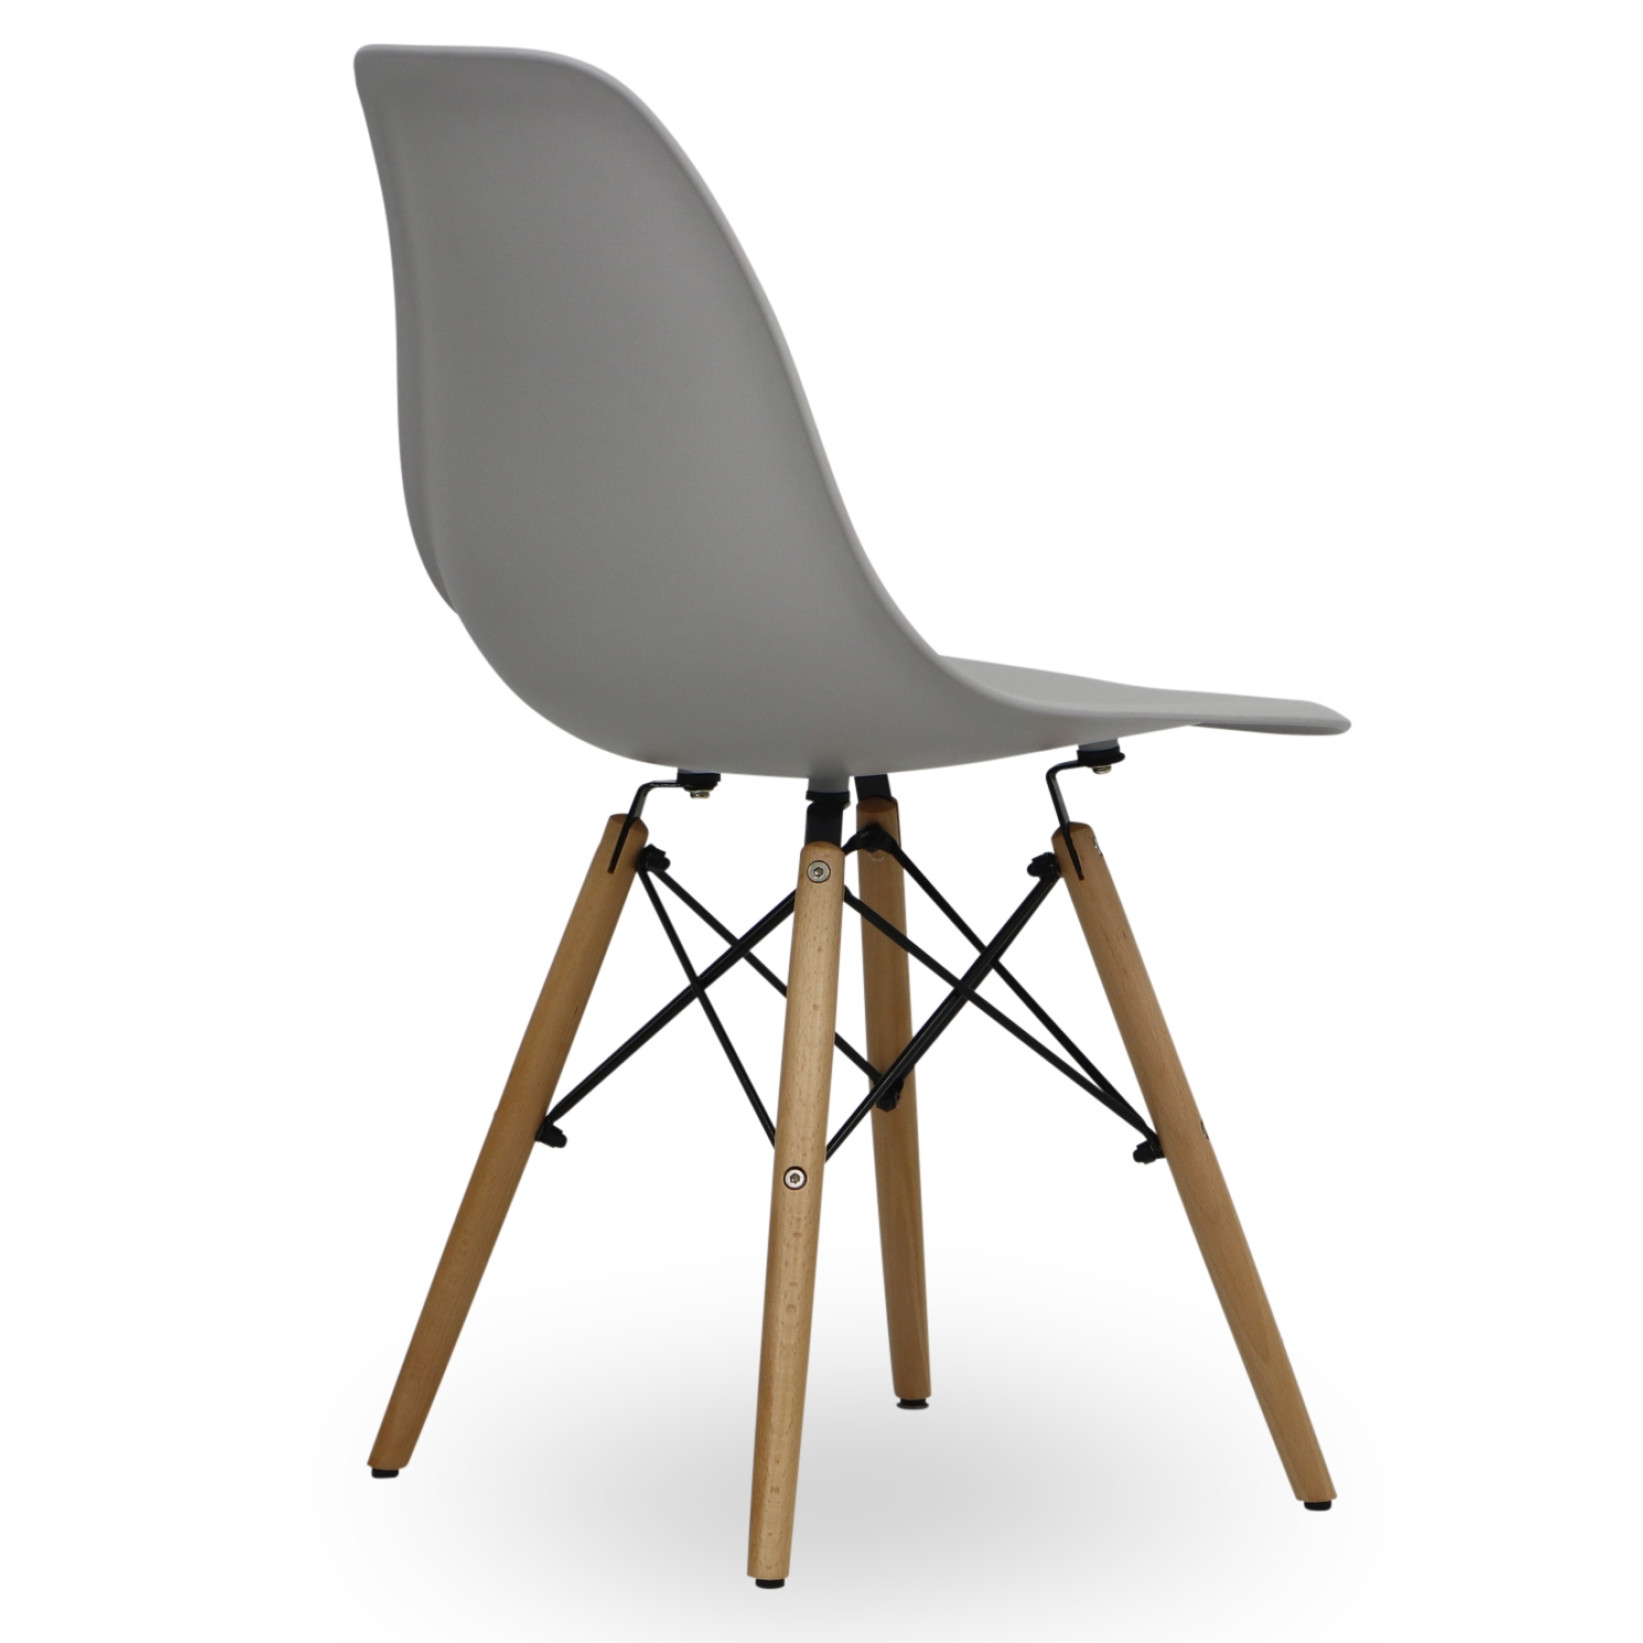 Eames light grey replica designer chair living room for Designer furniture replica malaysia